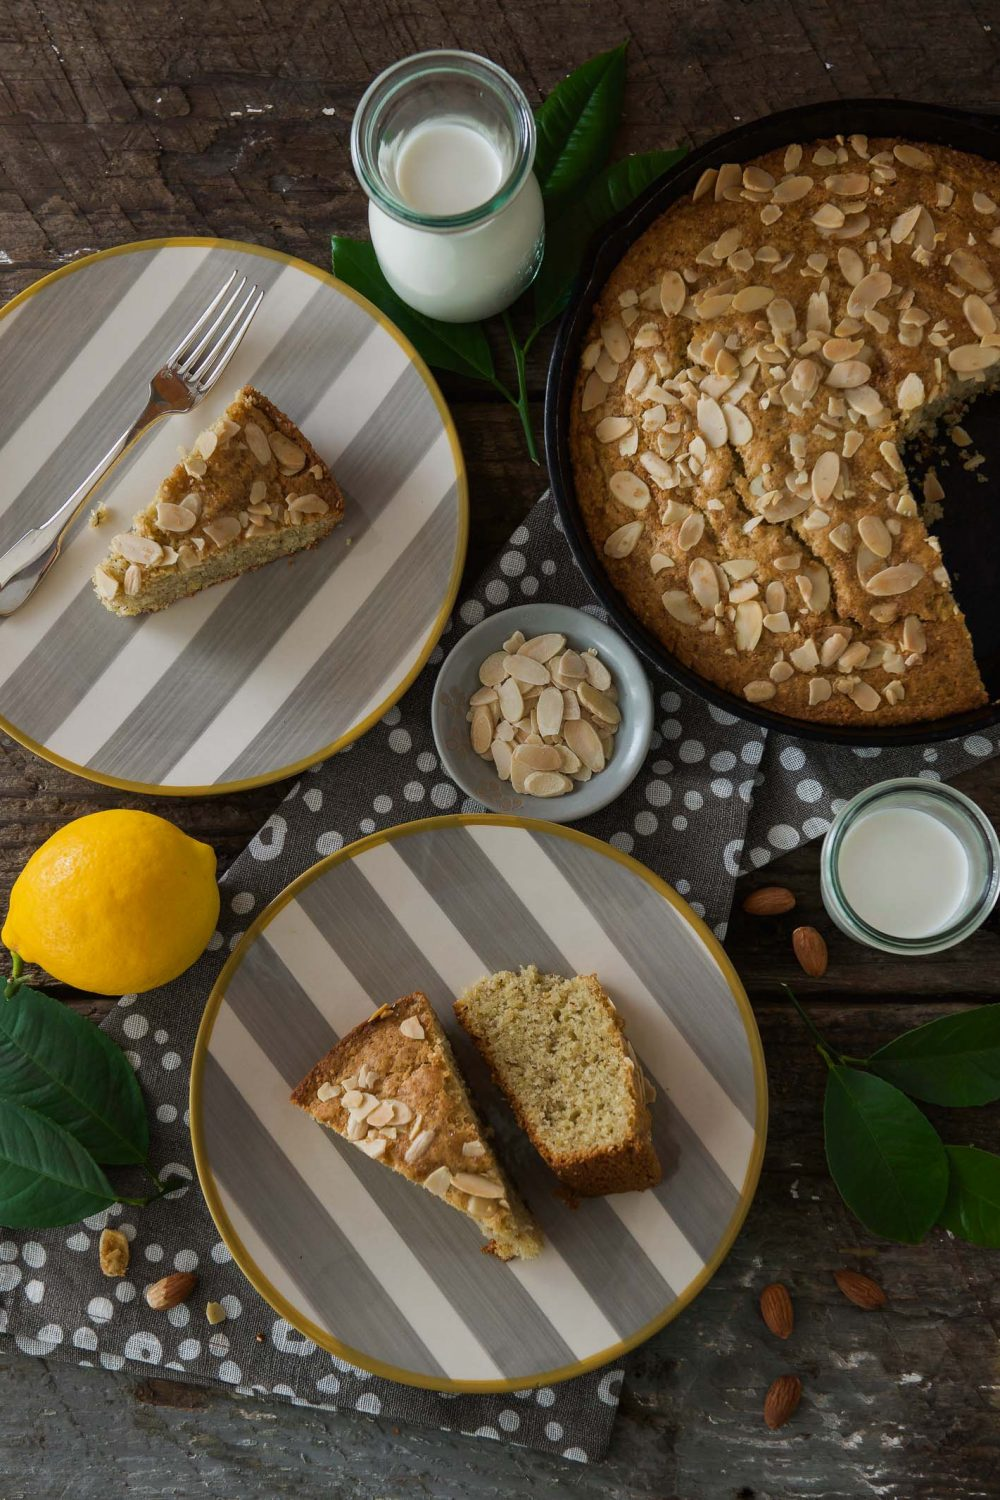 Gluten Free Lemon-Almond Olive Oil Cake